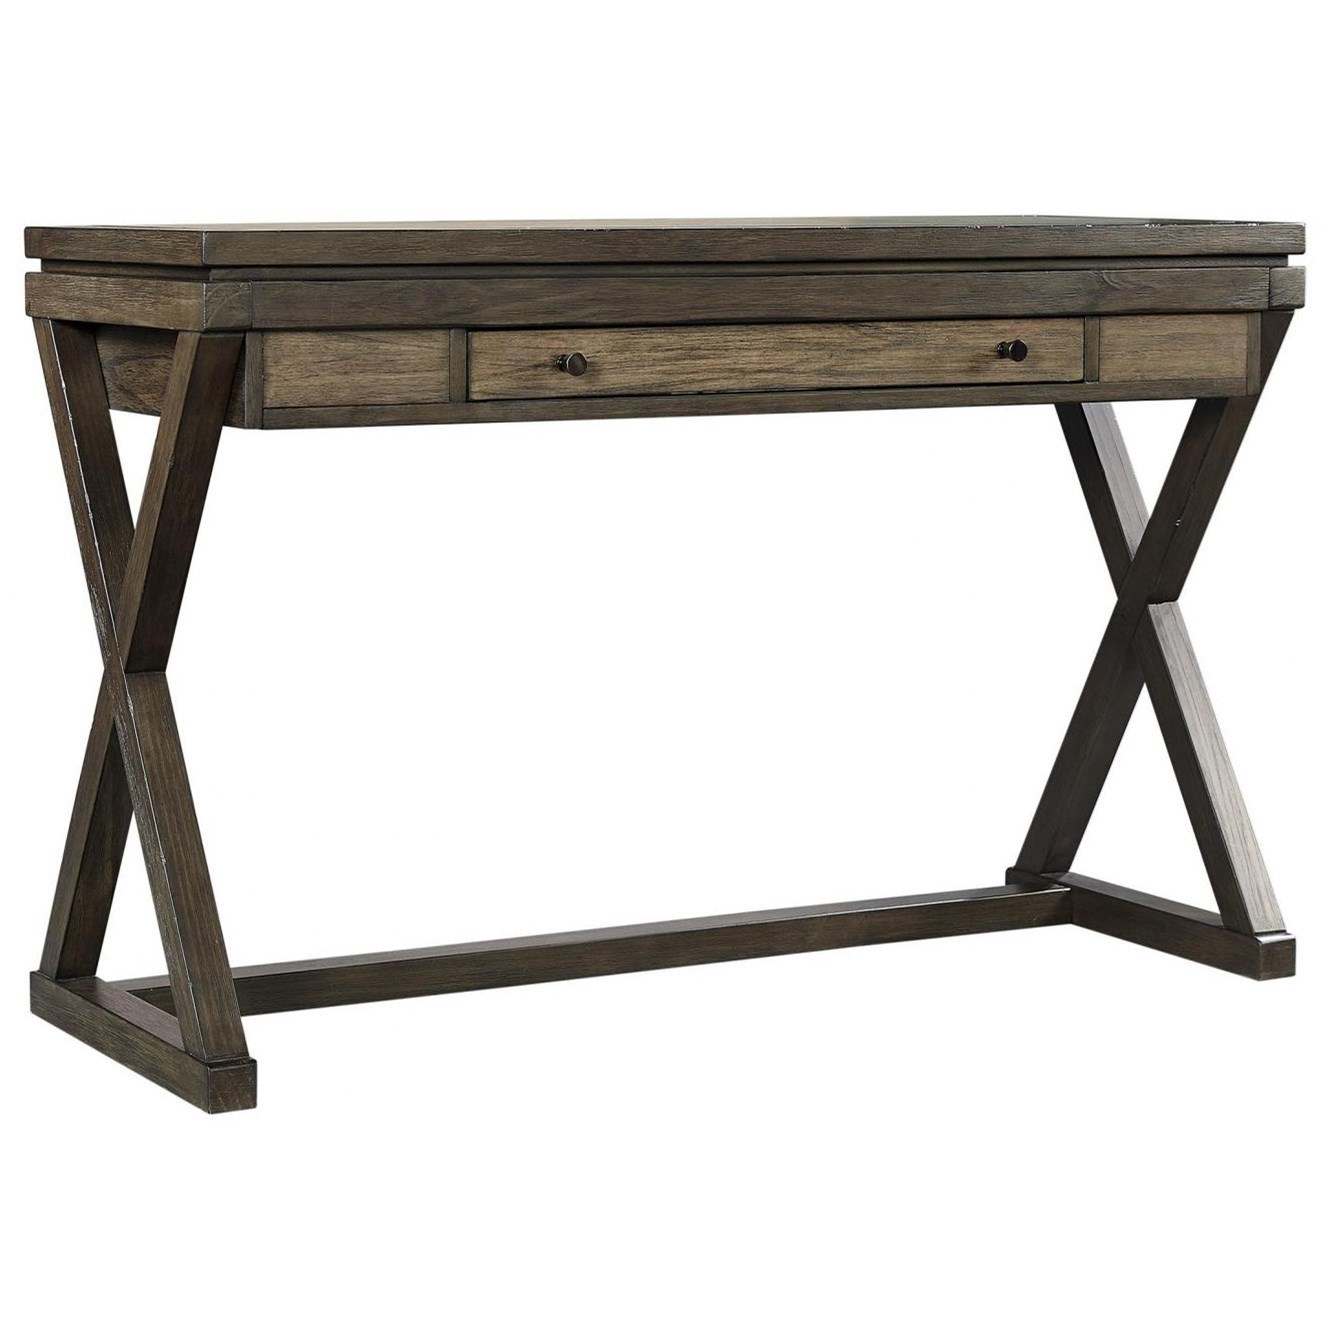 Westlake Sofa Table  by Aspenhome at Walker's Furniture